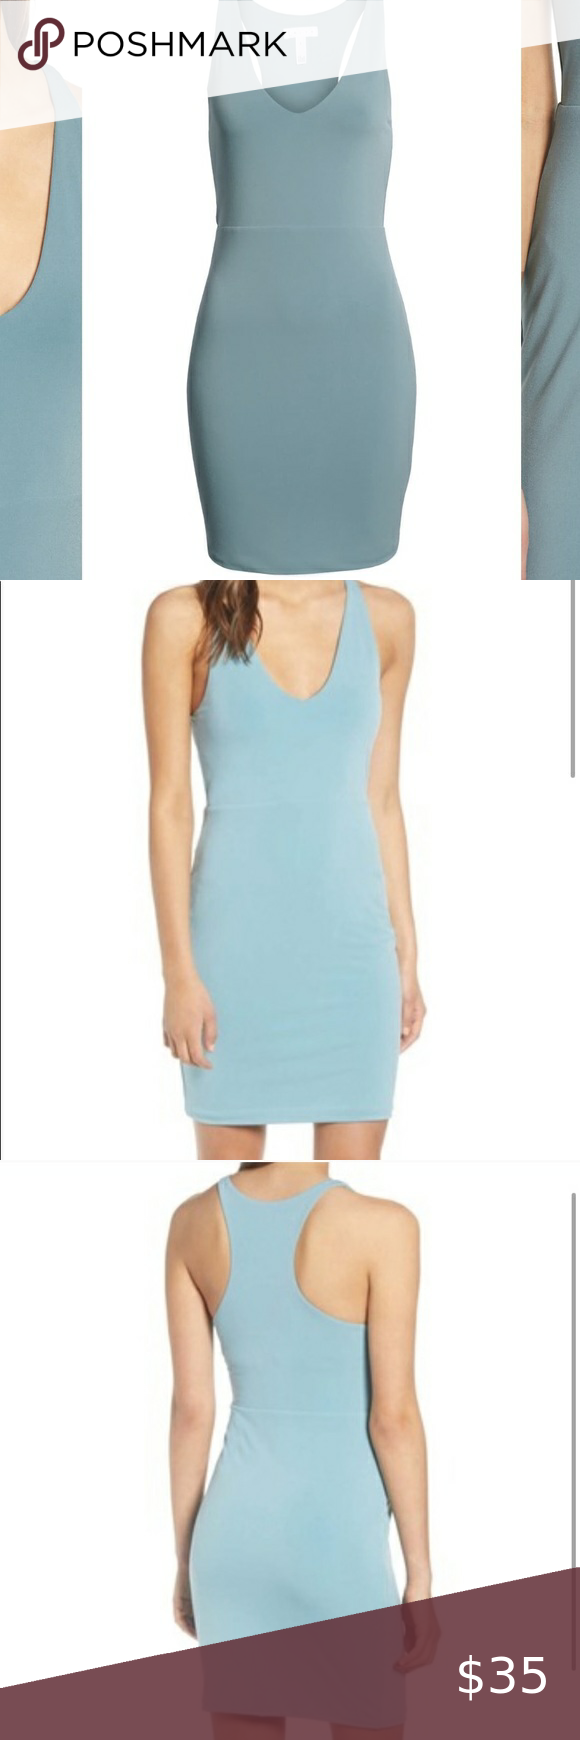 Leith Racerback Bodycon Dress Teal Xxs Brand New Never Worn The Dress Is Teal Like The Pictu Bodycon Dress Long Sleeve Sweater Dress Sweater Dress Midi [ 1740 x 580 Pixel ]